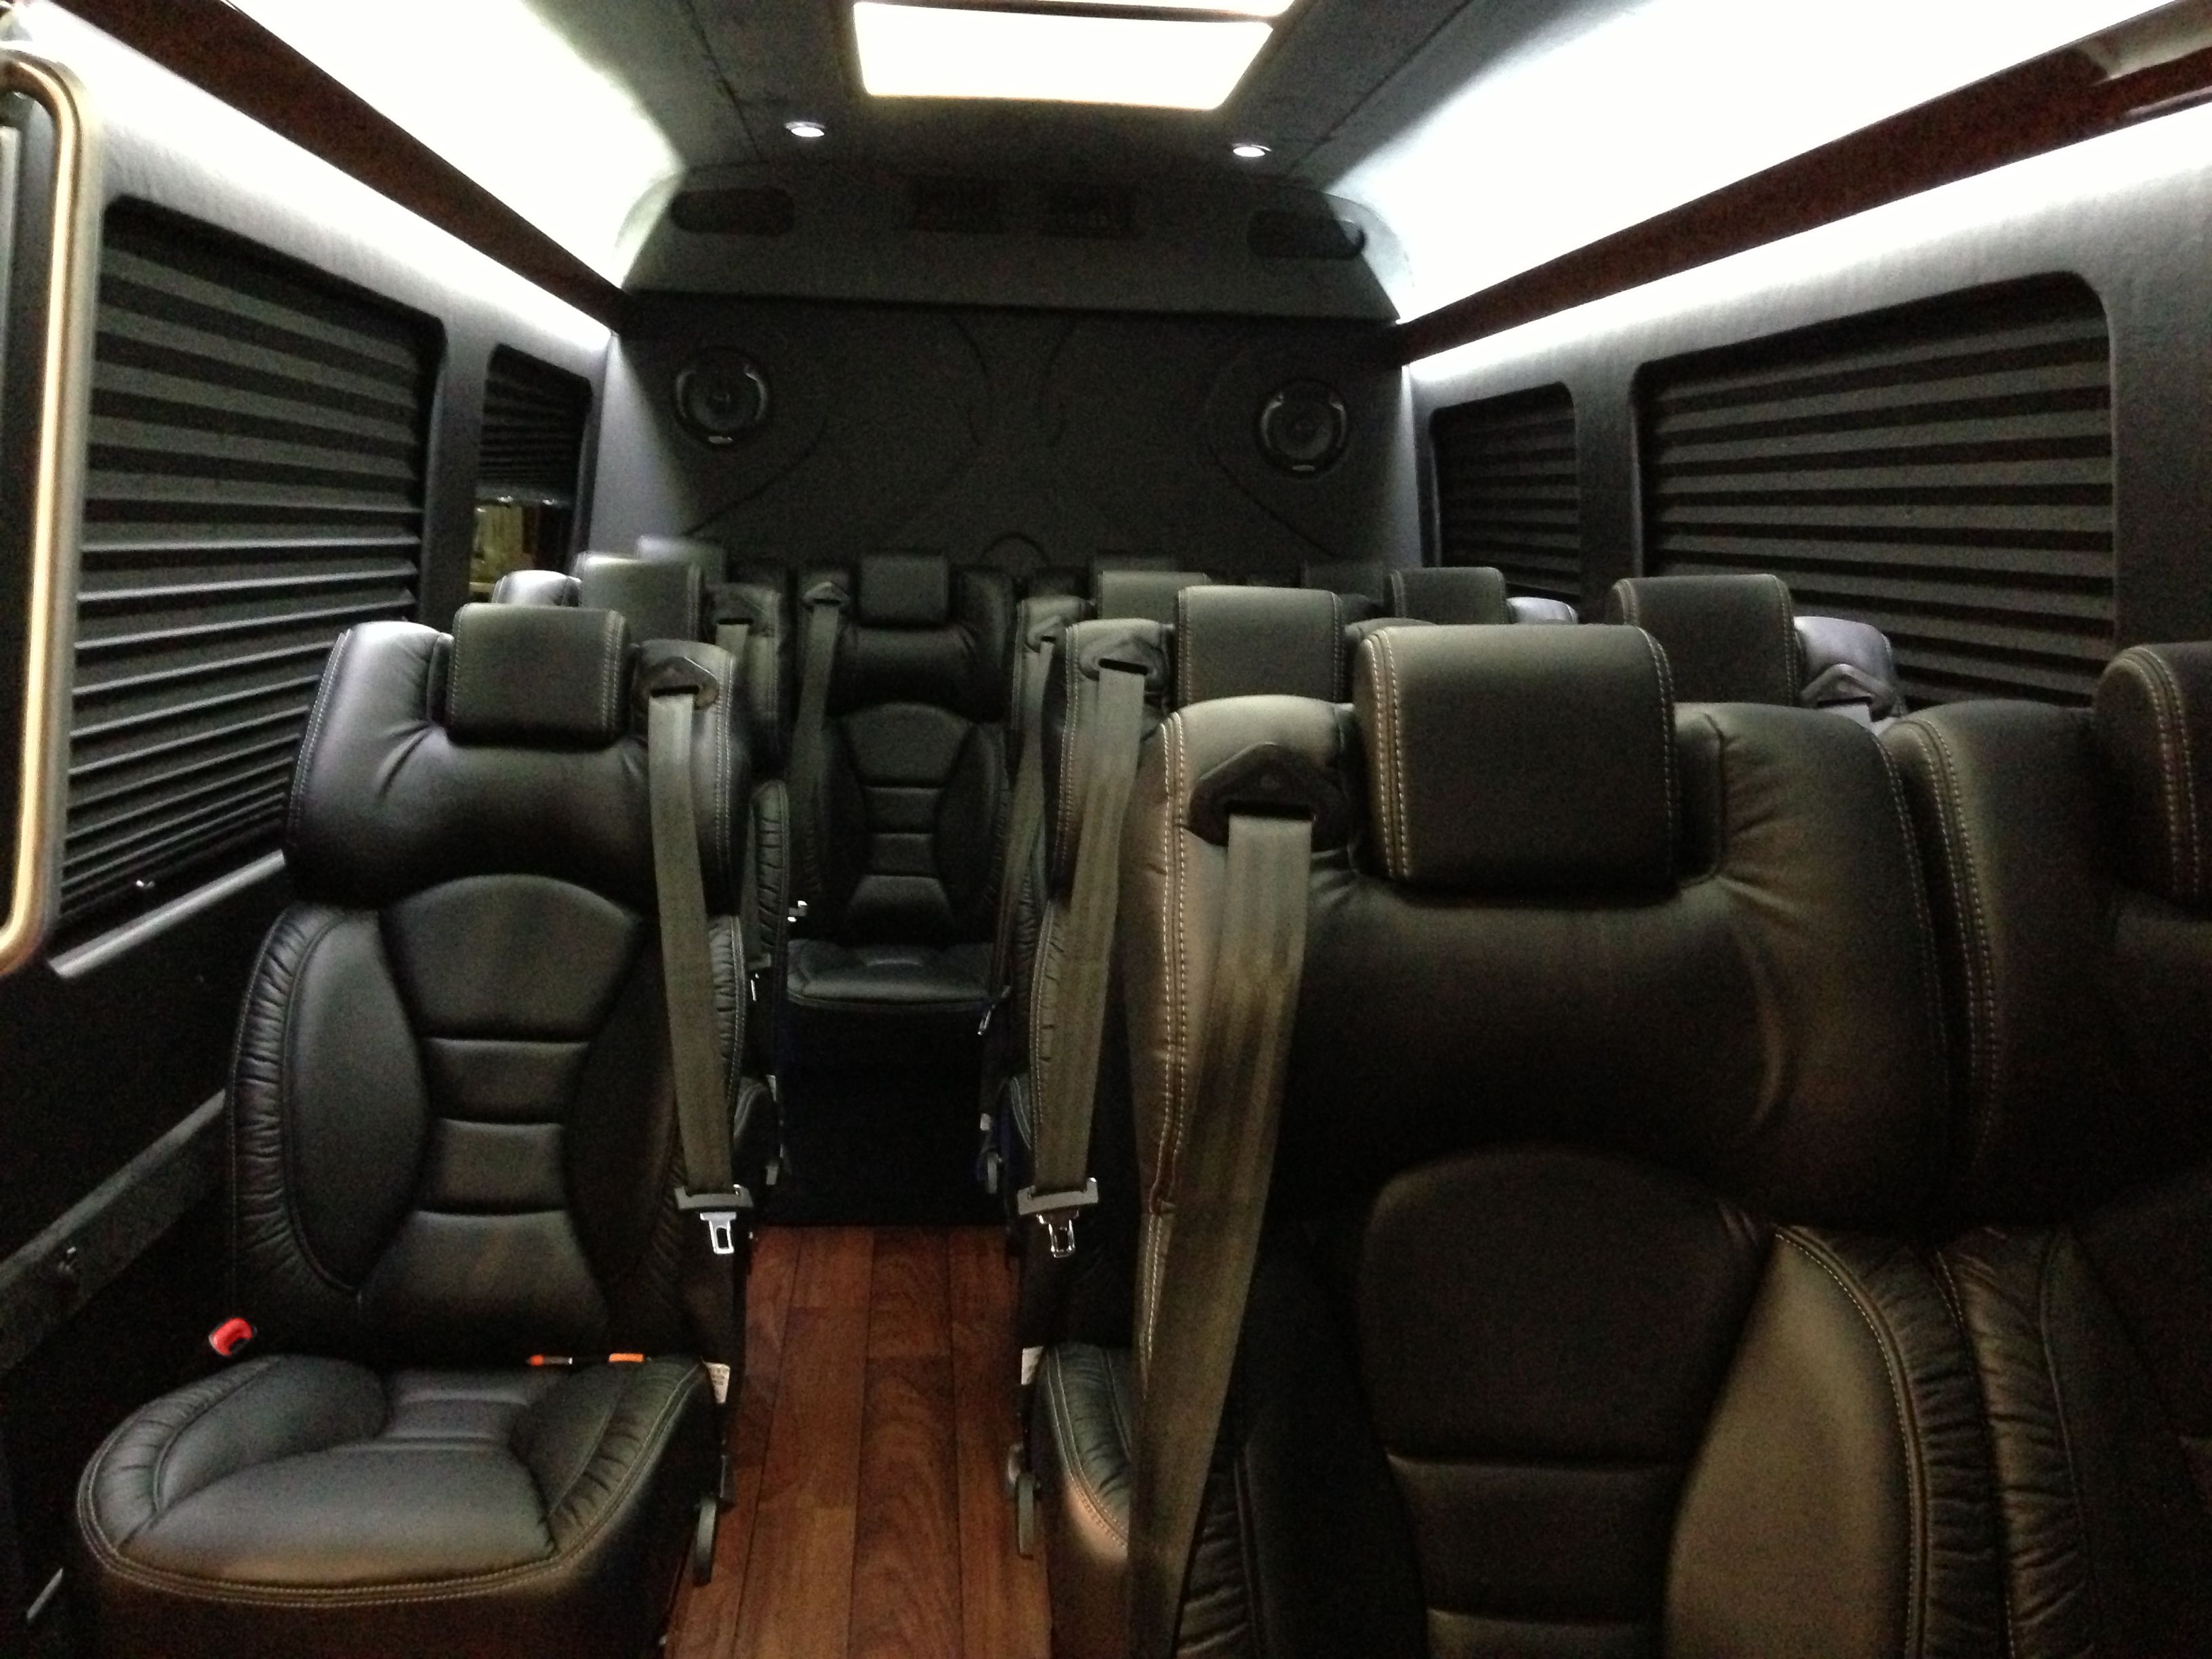 Mercedes Sprinter Mini Bus Interior Inviting Interiors Pinterest Mini Bus Mercedes